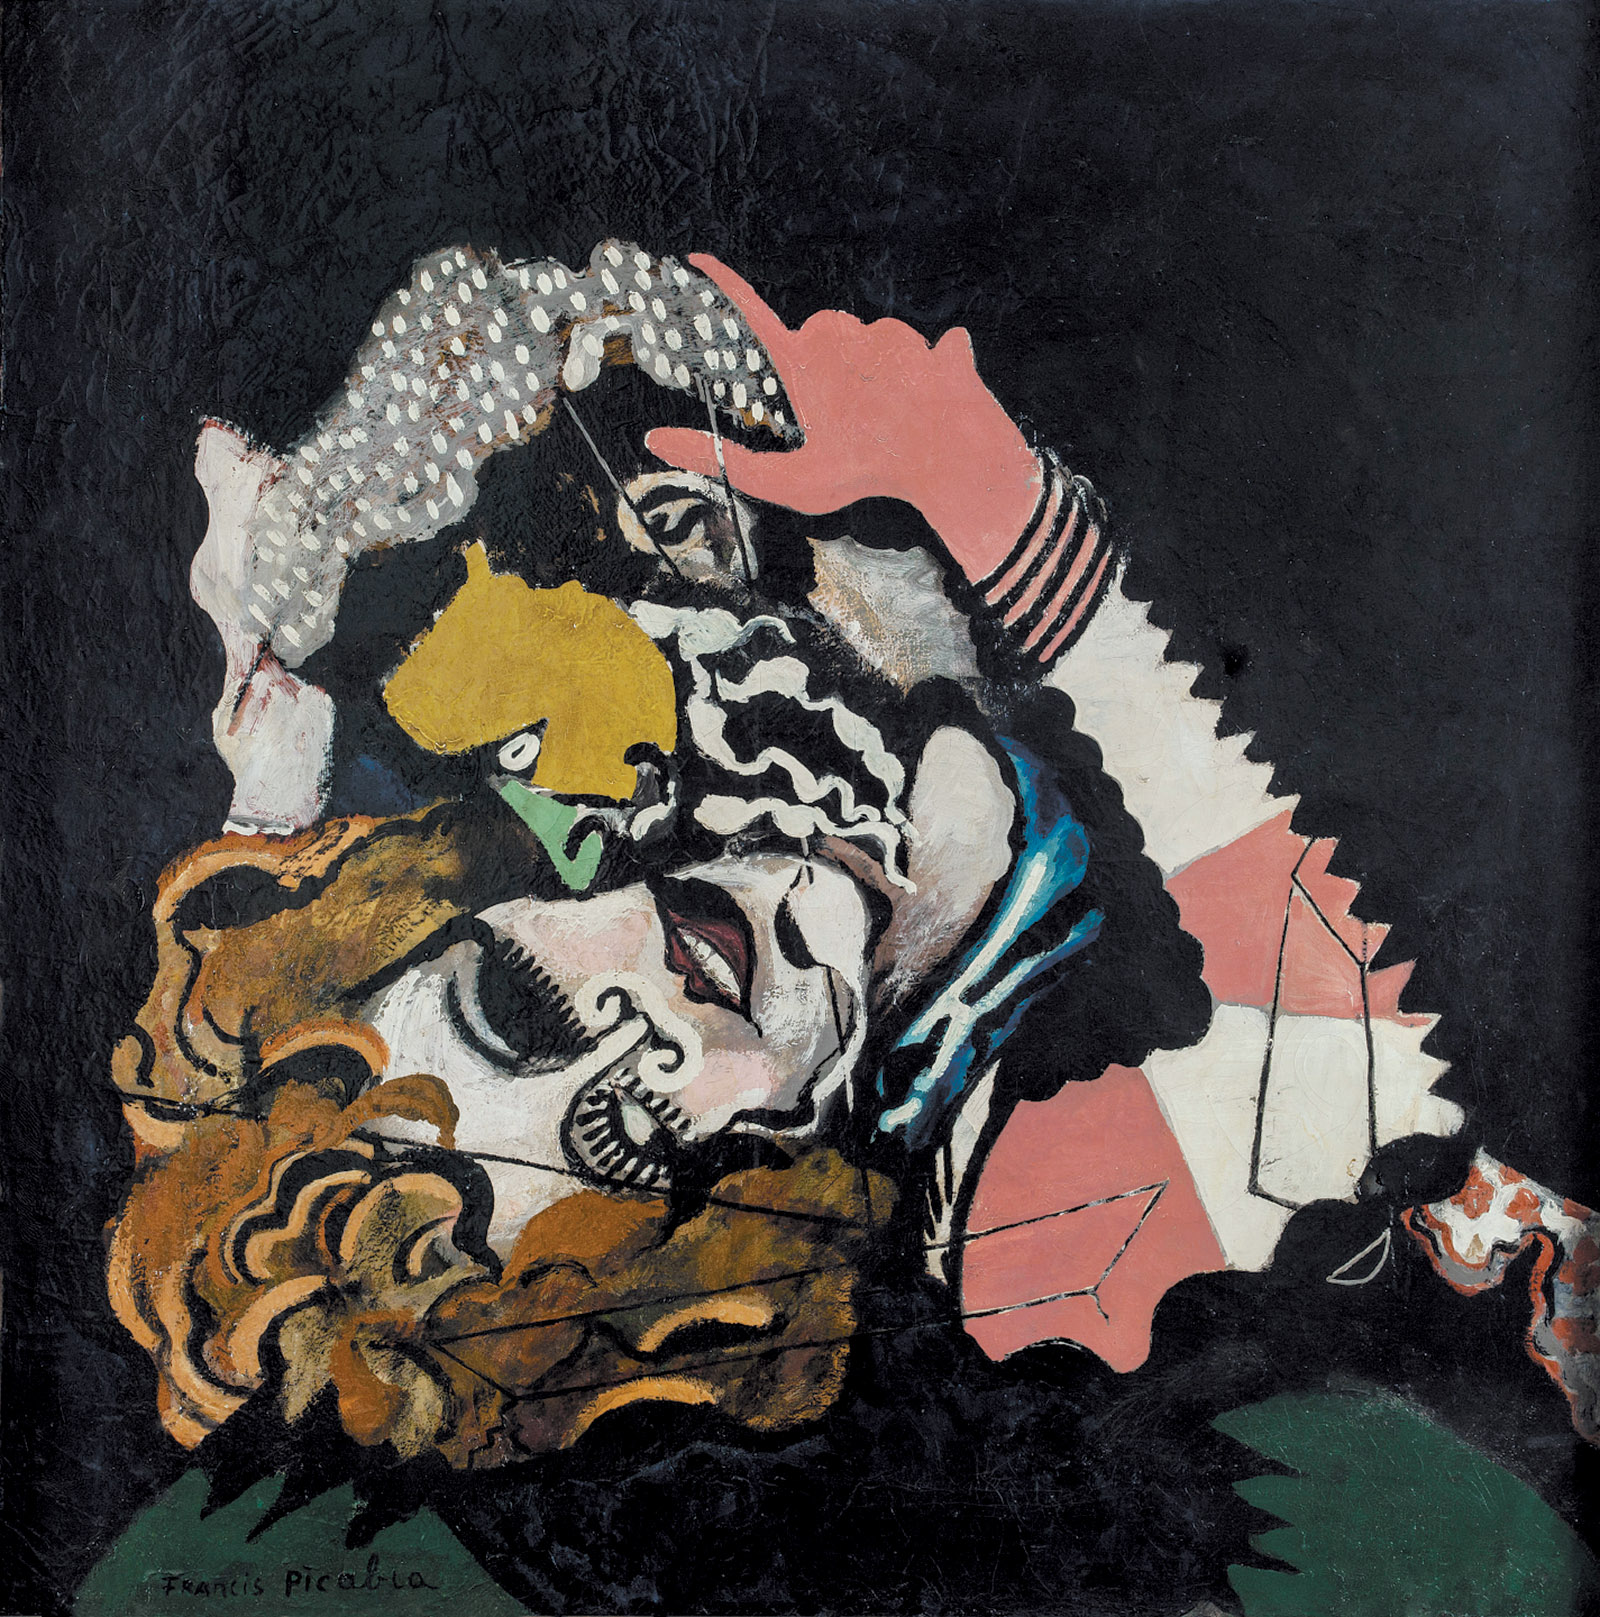 Francis Picabia: The Lovers (After the Rain), 1925